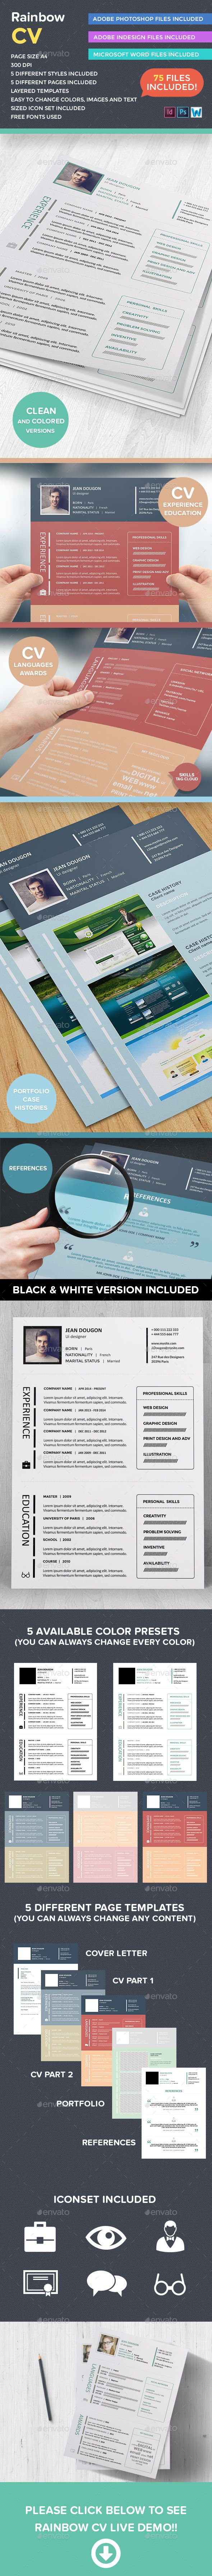 Rainbow CV Creative Template (InDesign INDD, CS4, 210x297, 210x297, a4, artist, business, clean, color, colored, corporate, creative, curriculum vitae, cv, cv design, digital, elegant, freelance, freelancer, graphic designer, hr, human resources, job, personal, photographer, professional, profile, resume, simple, skill, tag cloud, web developer)